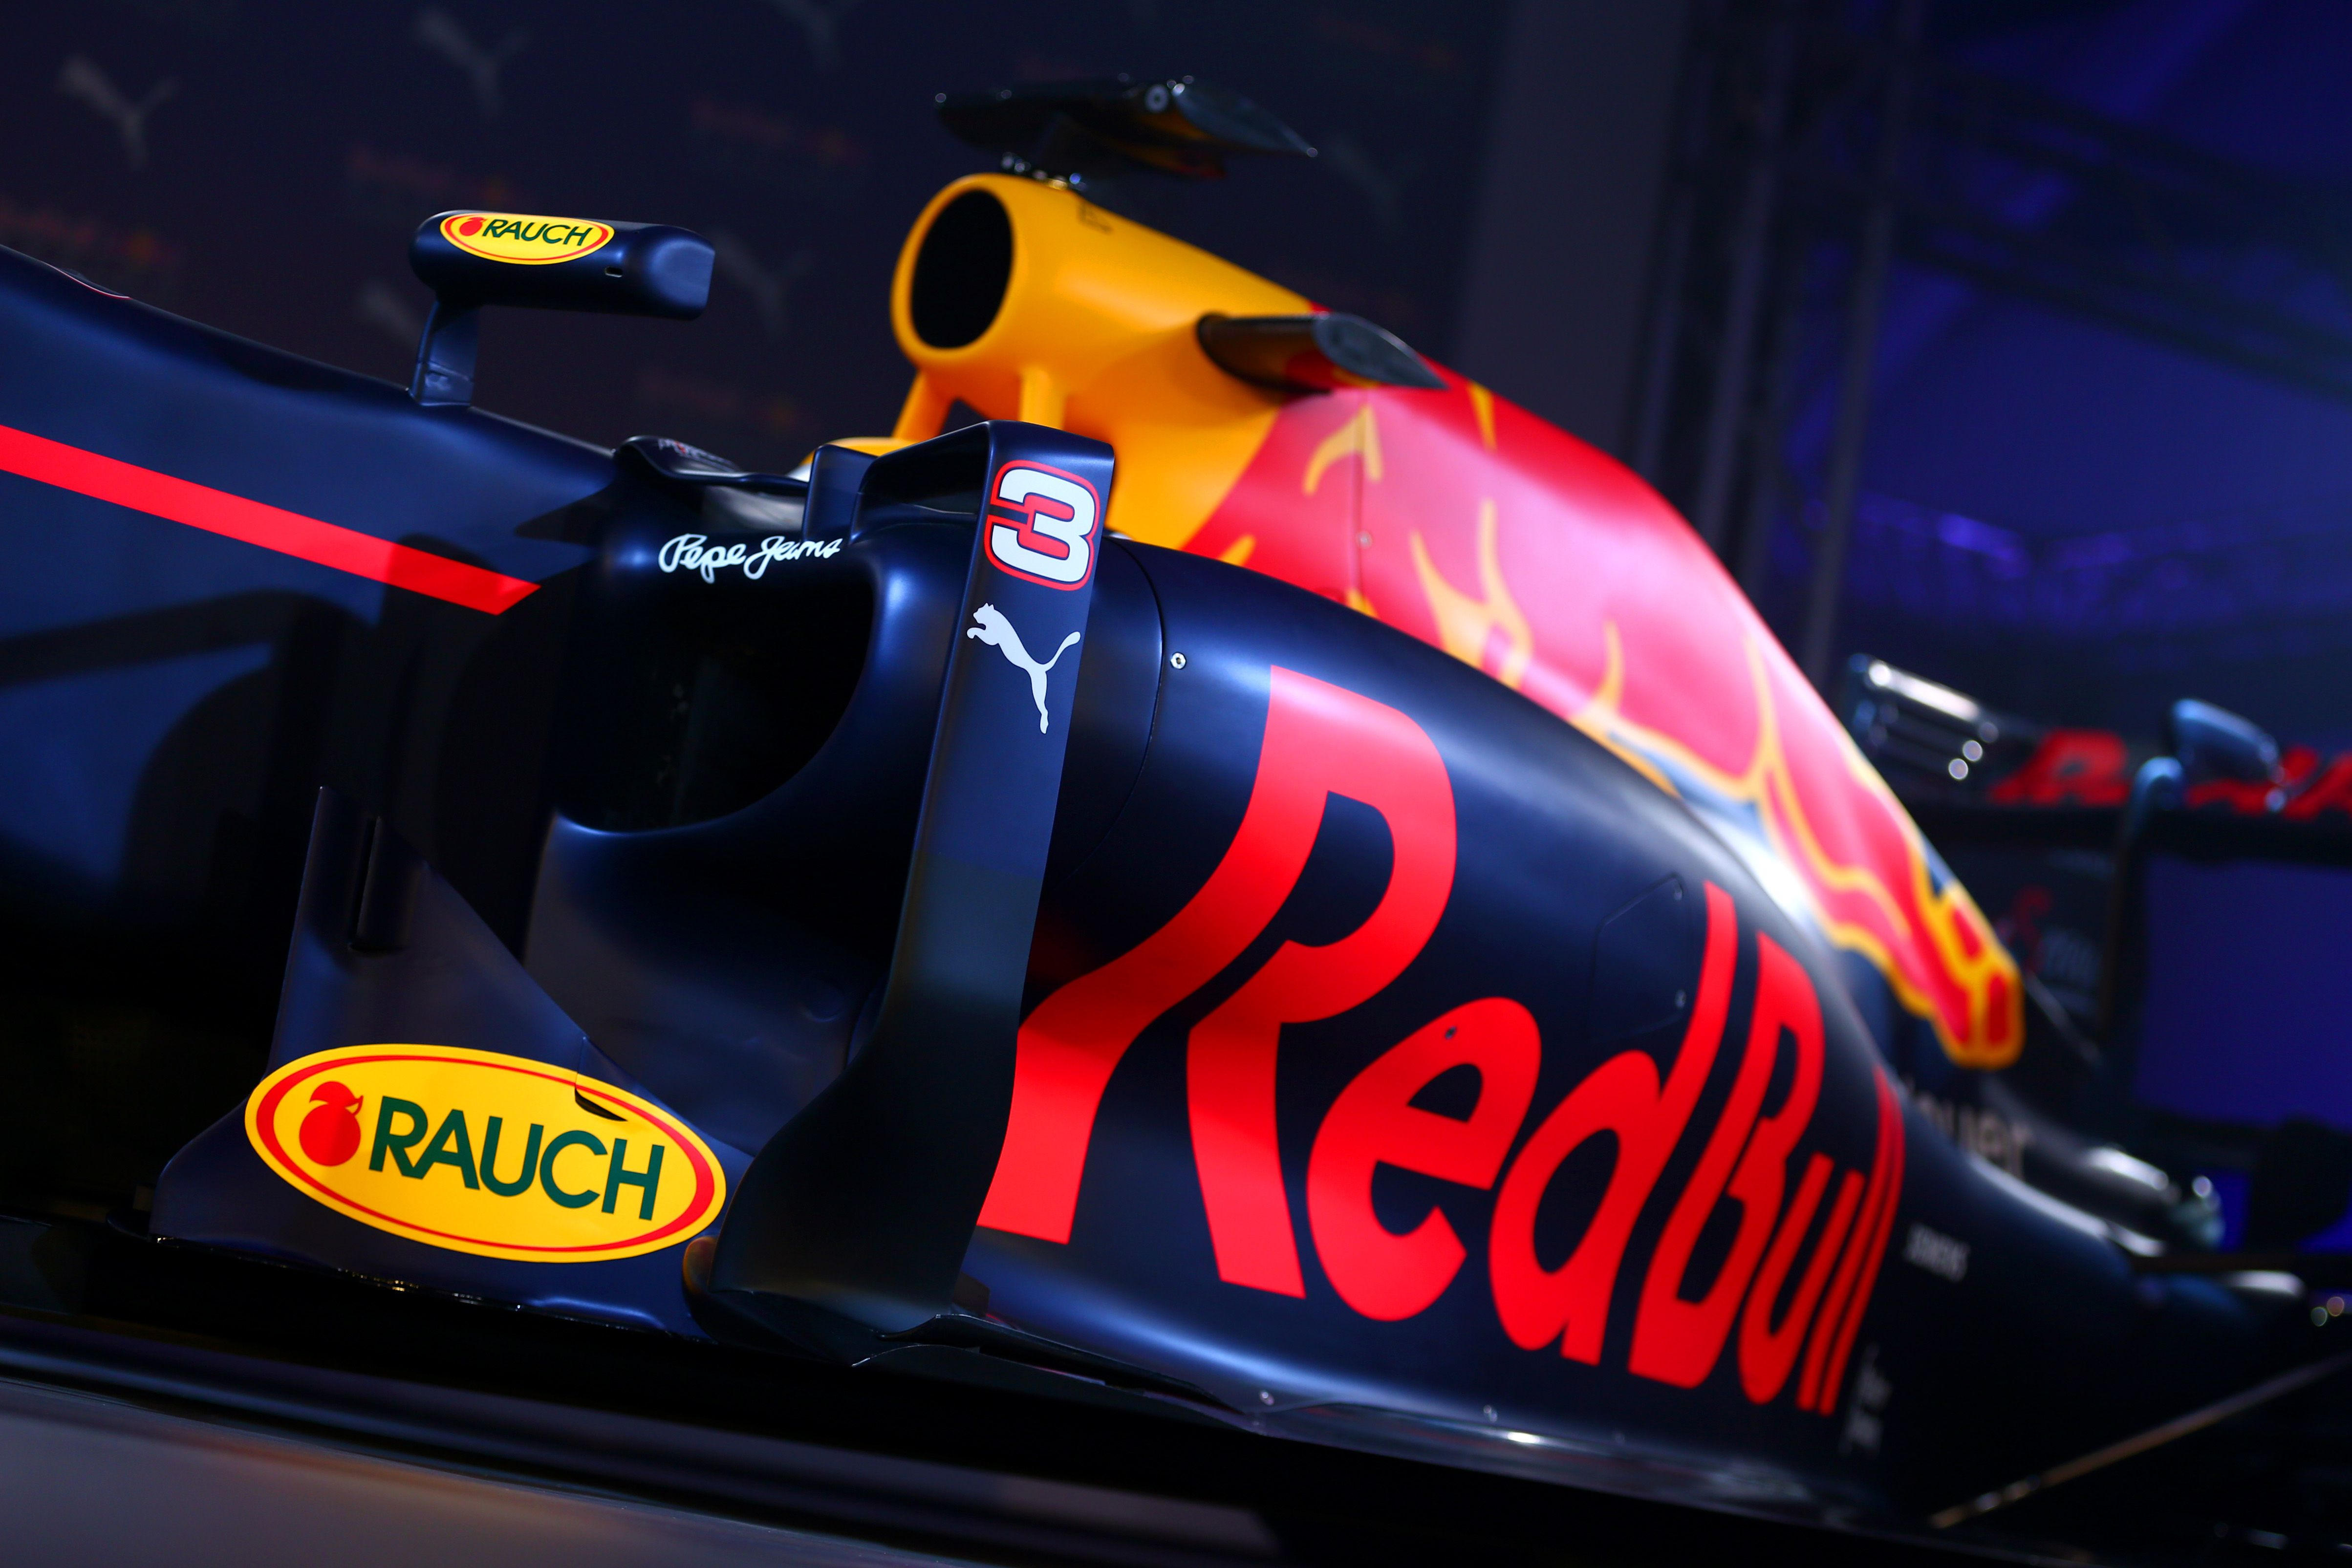 red bull f1 wallpaper hd resolution #3ee | cars | pinterest | red